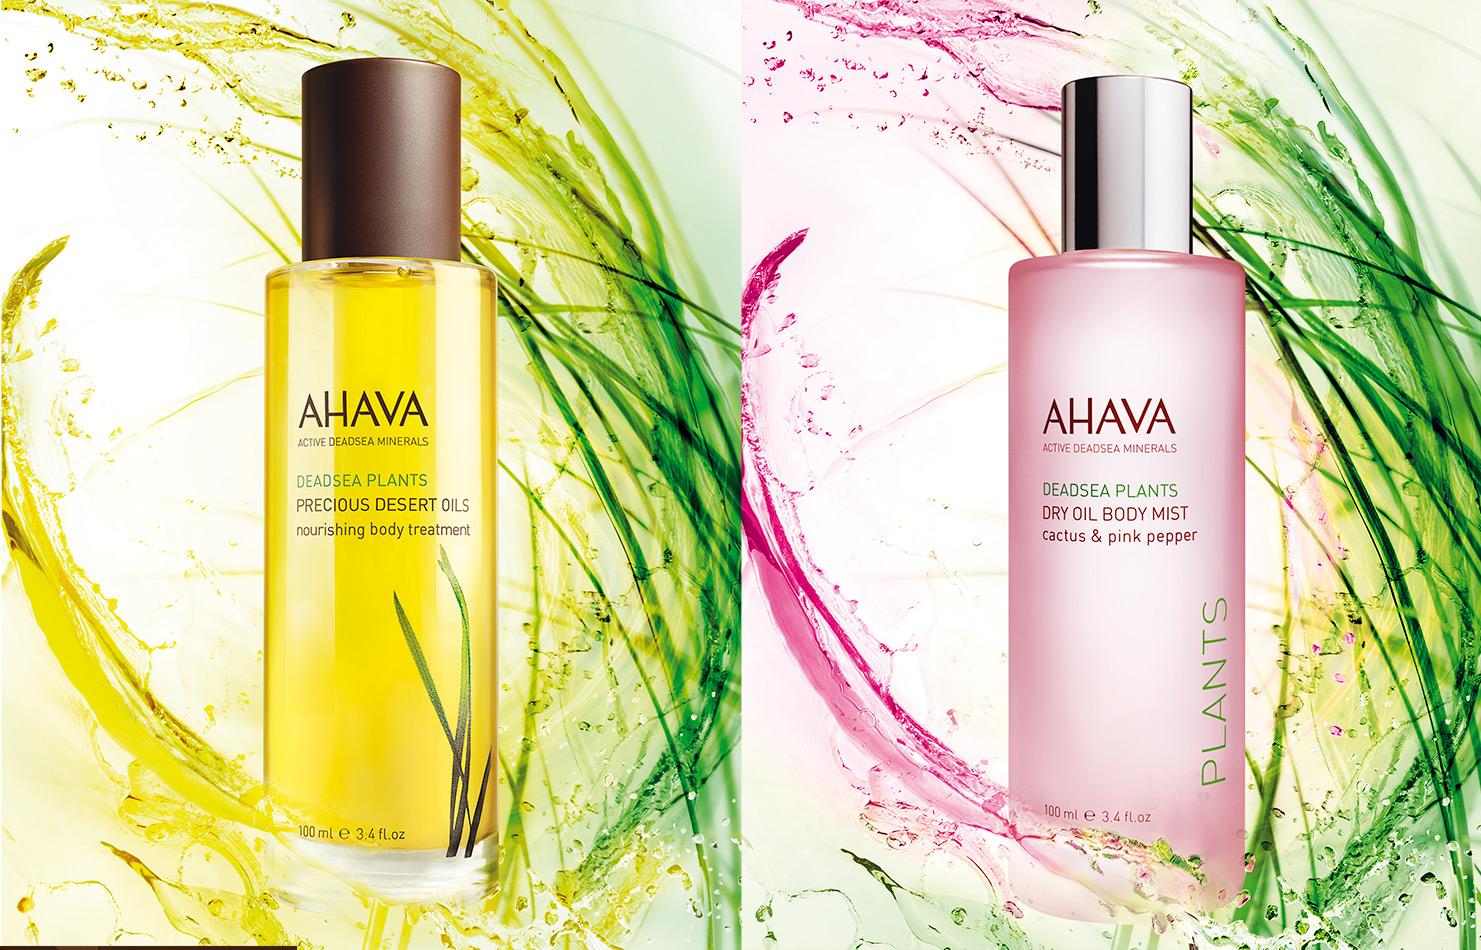 Cosmetics Ahava Deadsea Plants